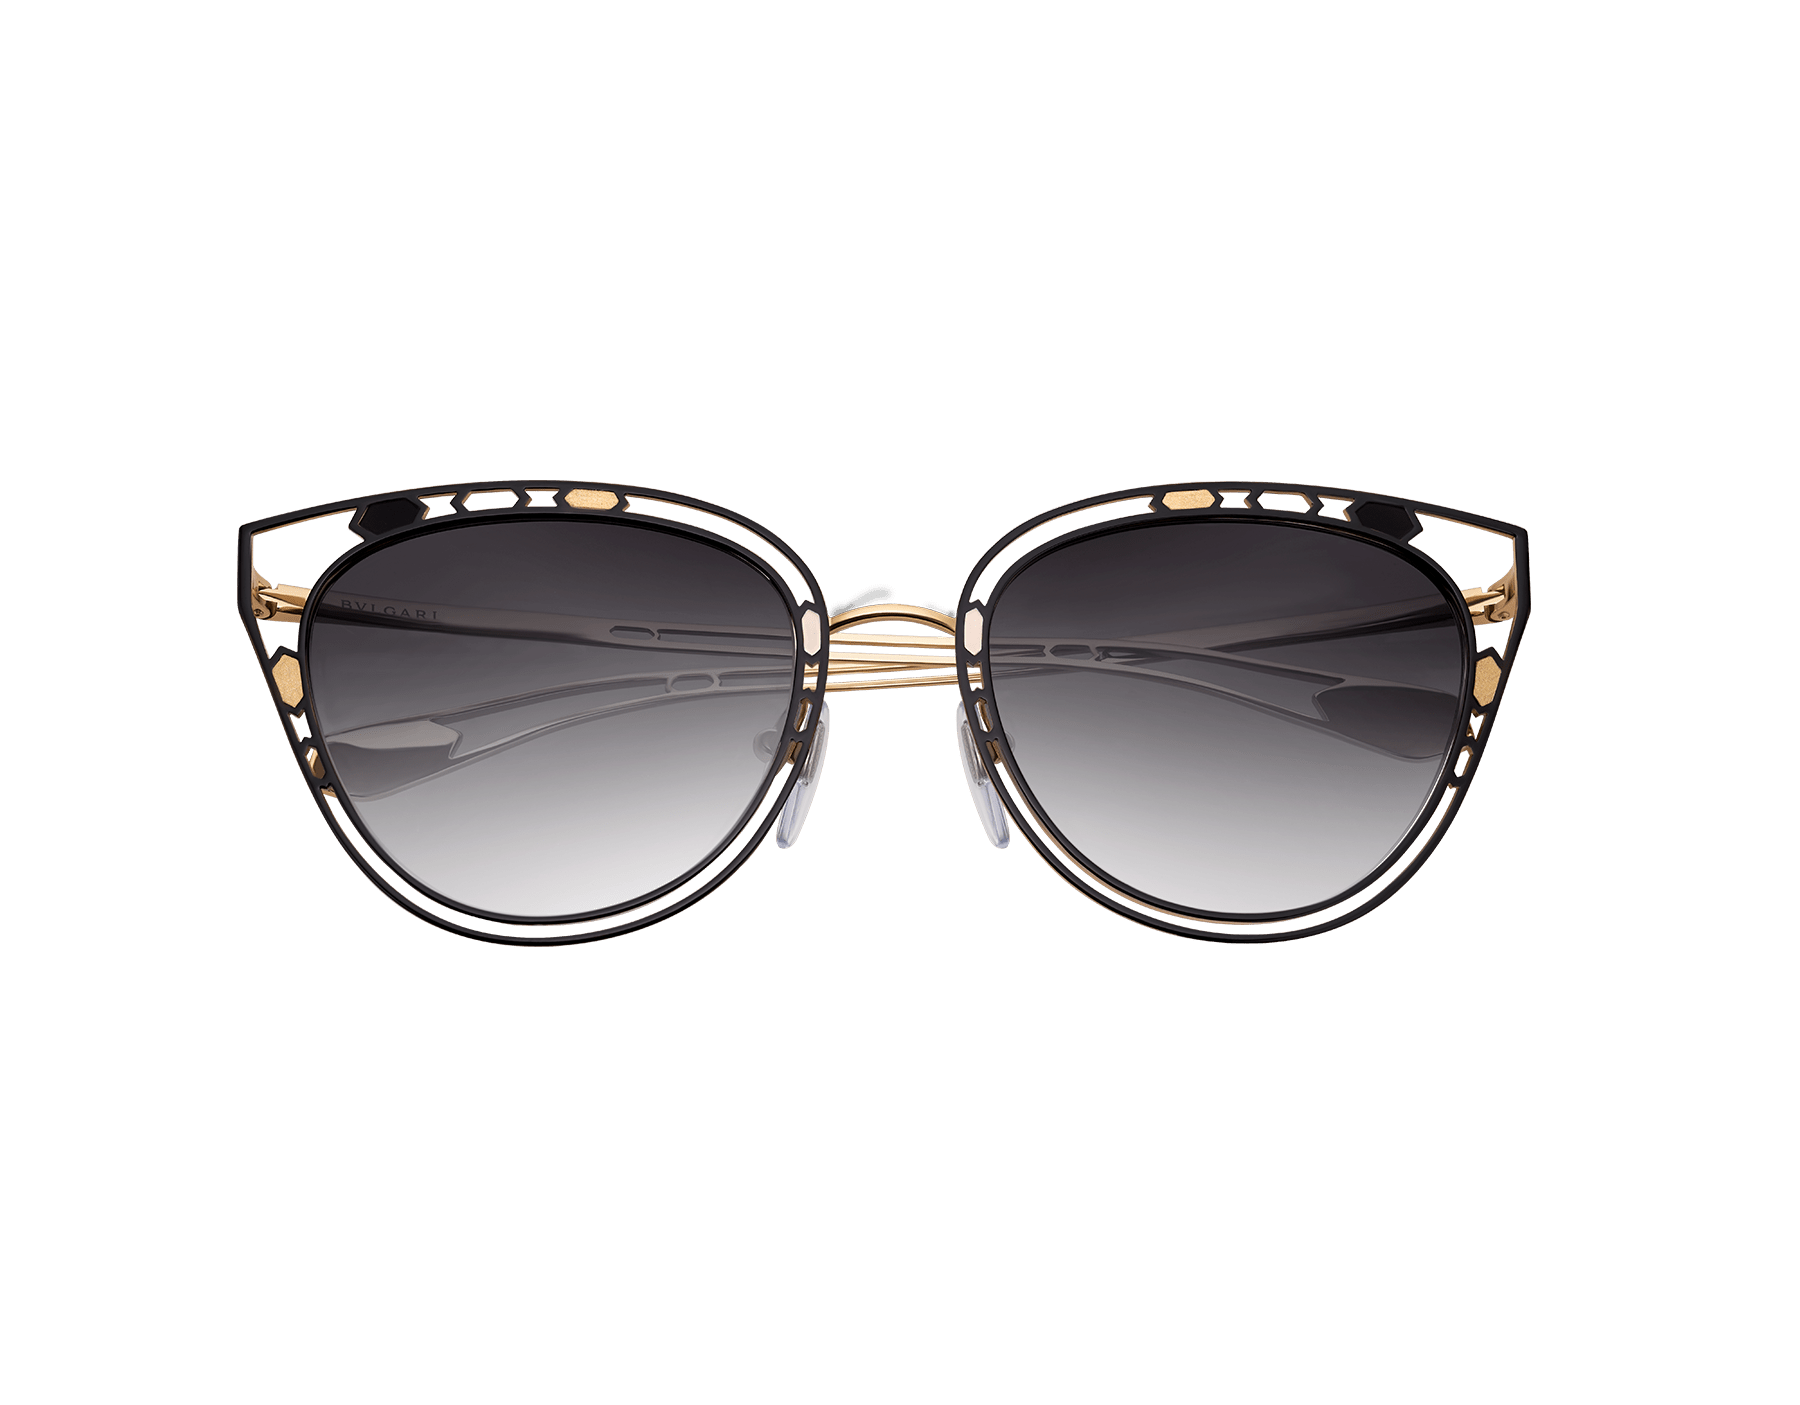 Serpenti 'Temptalicious' cat-eye metal frame with an openwork structure and colorful details. 903534 image 2